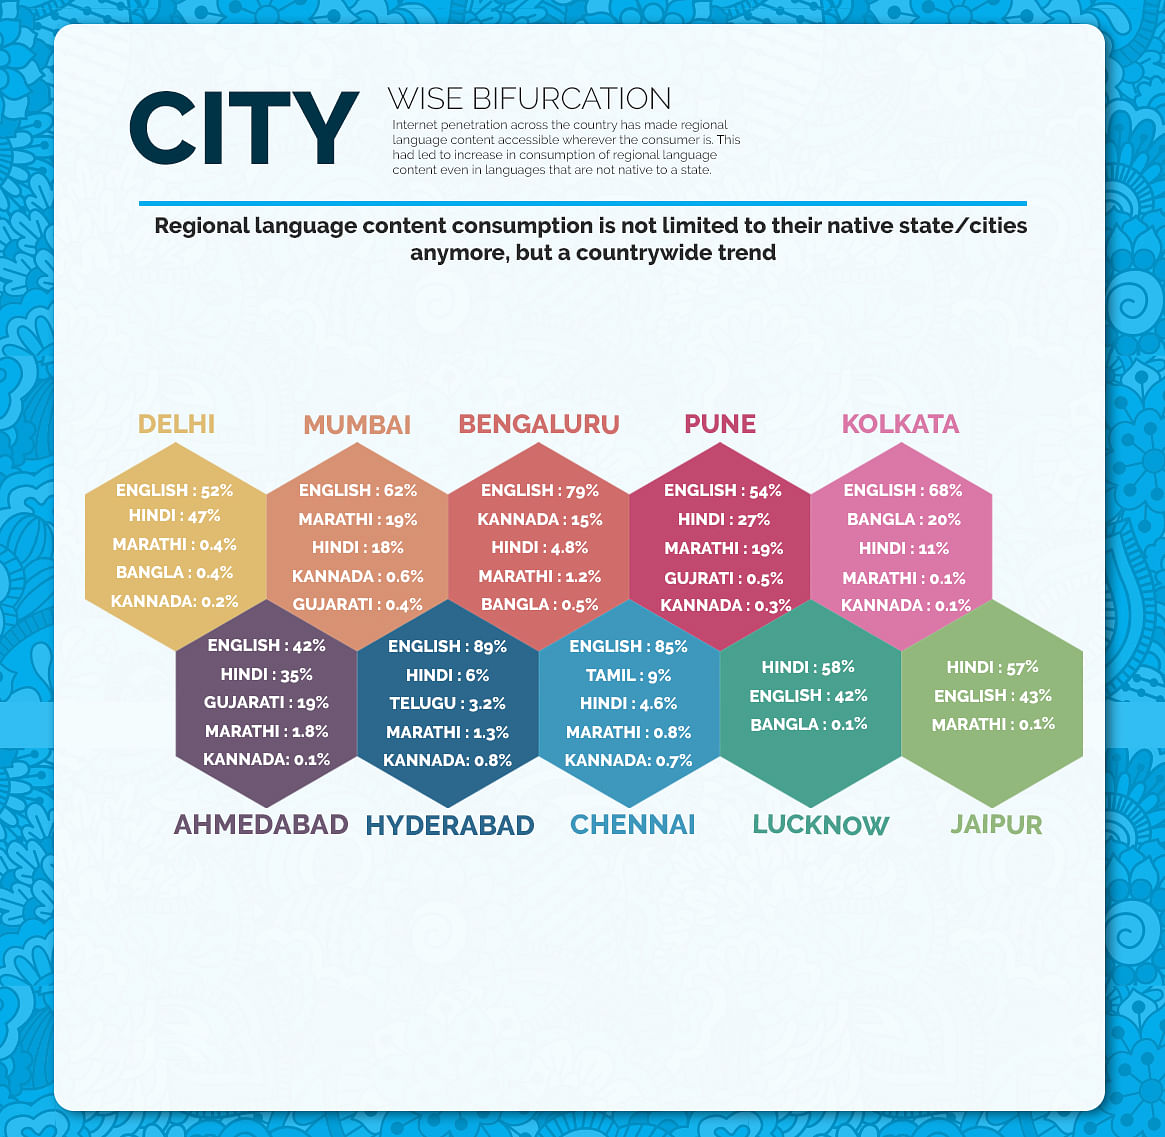 City wise bifurcation of languages in India